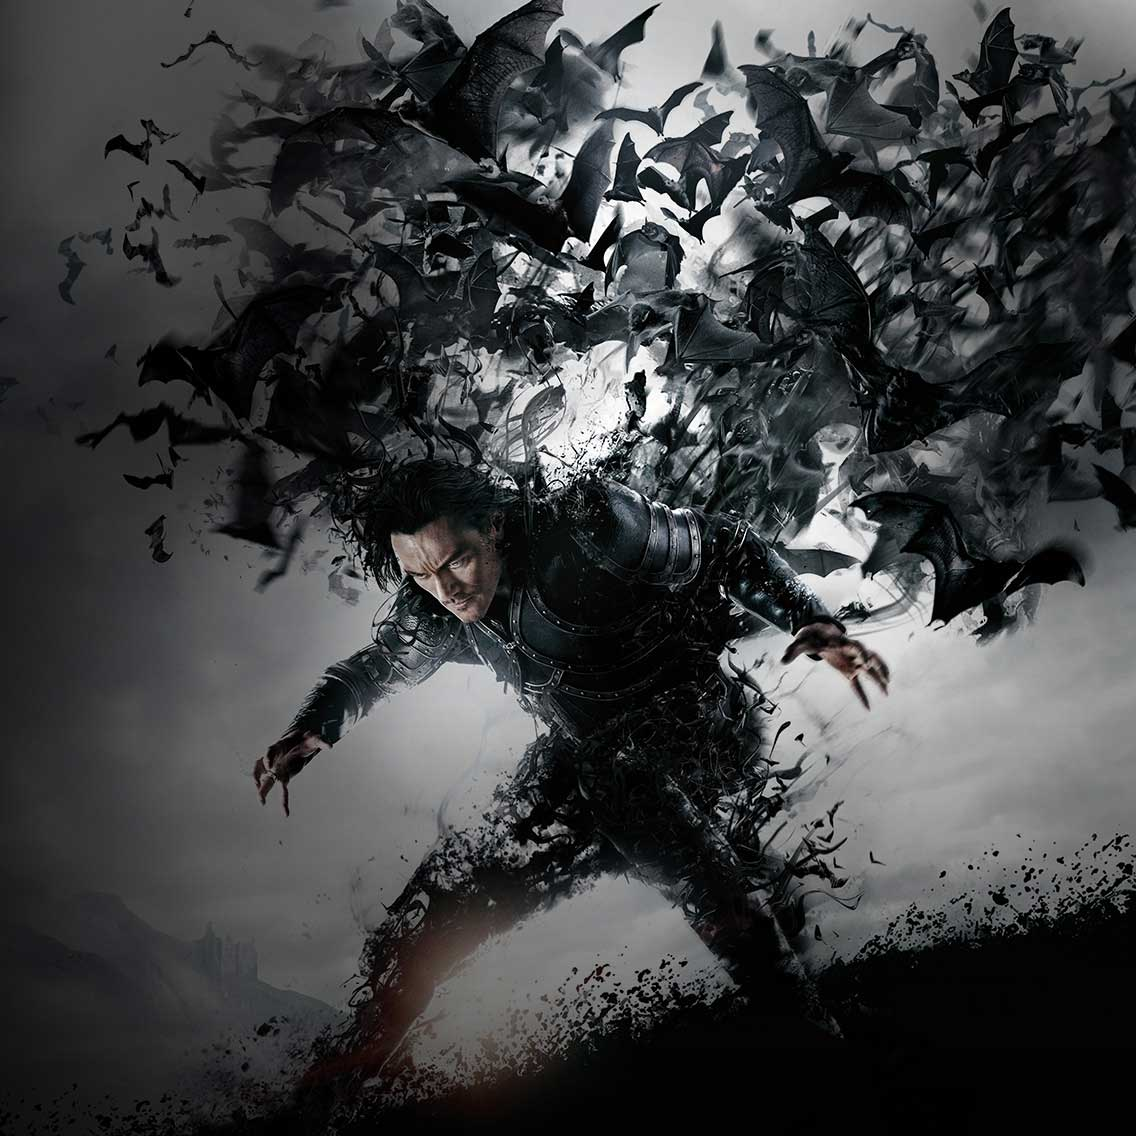 Free Download Dracula Untold 2014 Hd Wallpapers Driverlayer Search